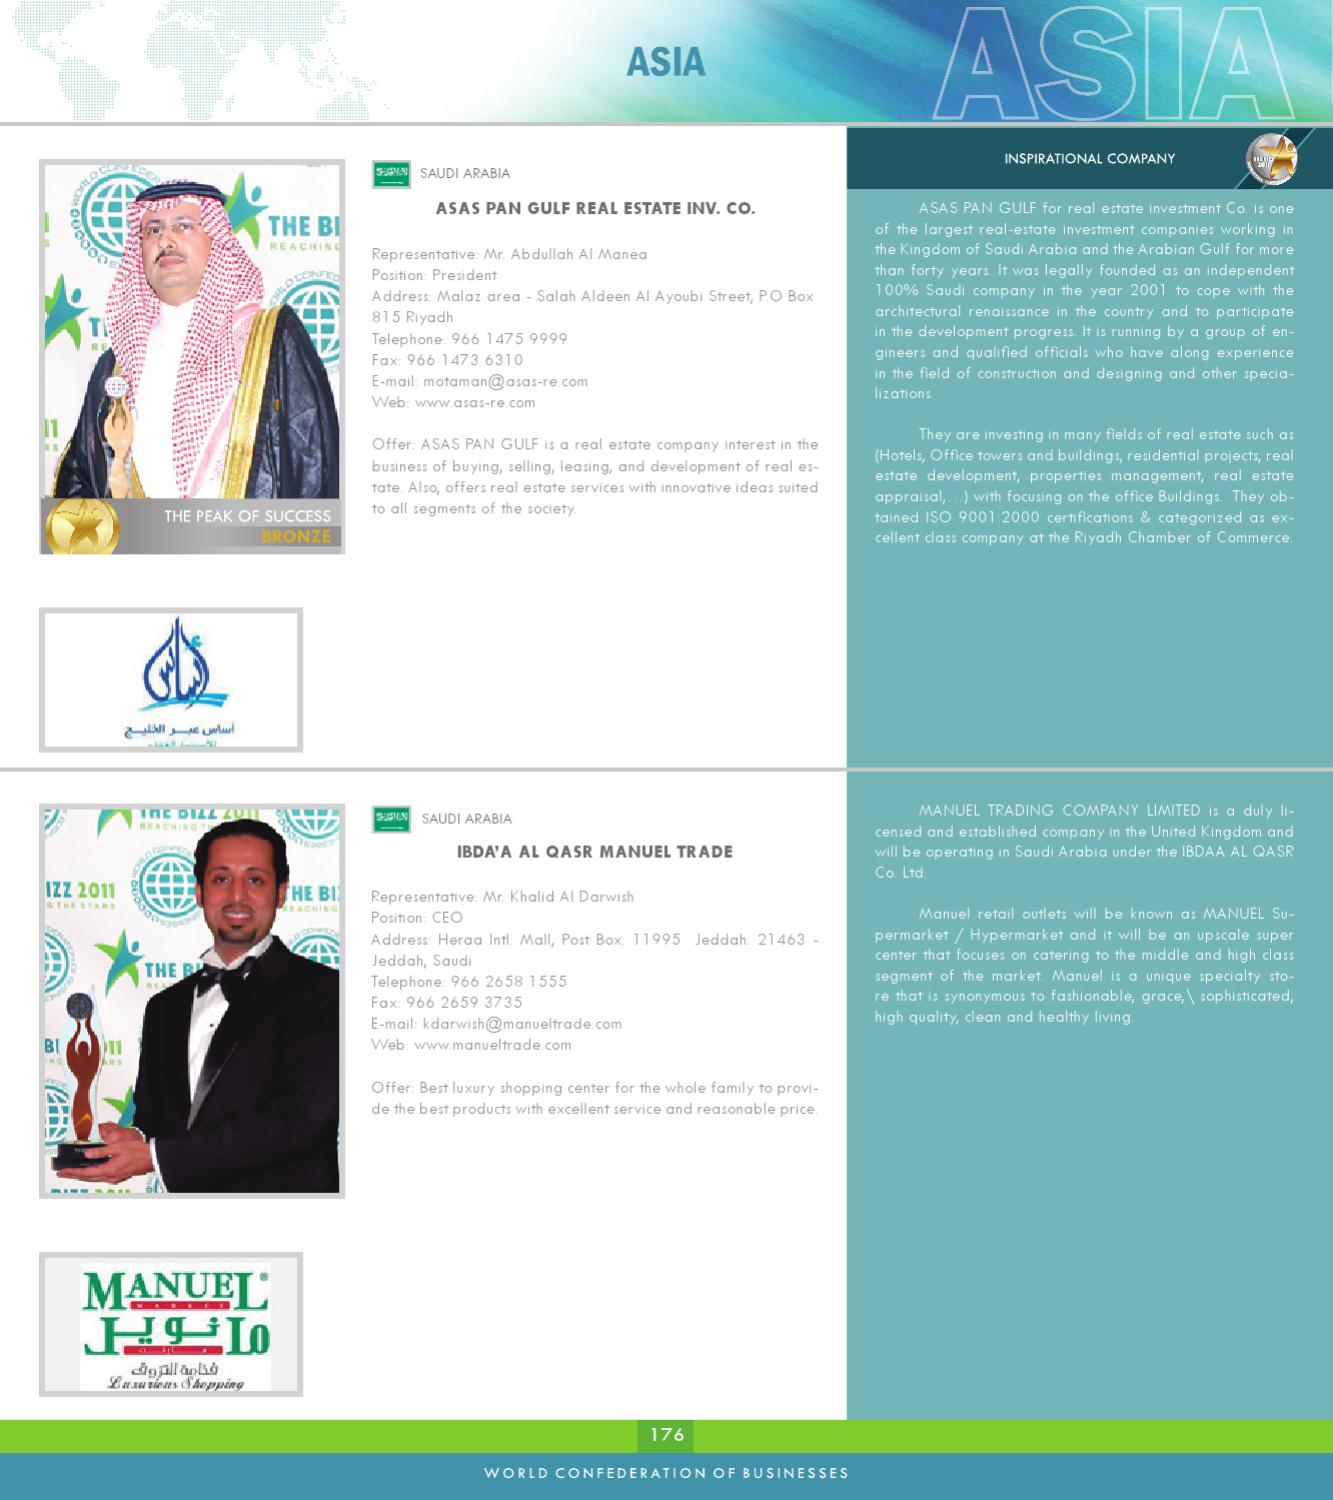 BUSINESS DIRECTORY 2011 by World Confederation of Businesses - issuu